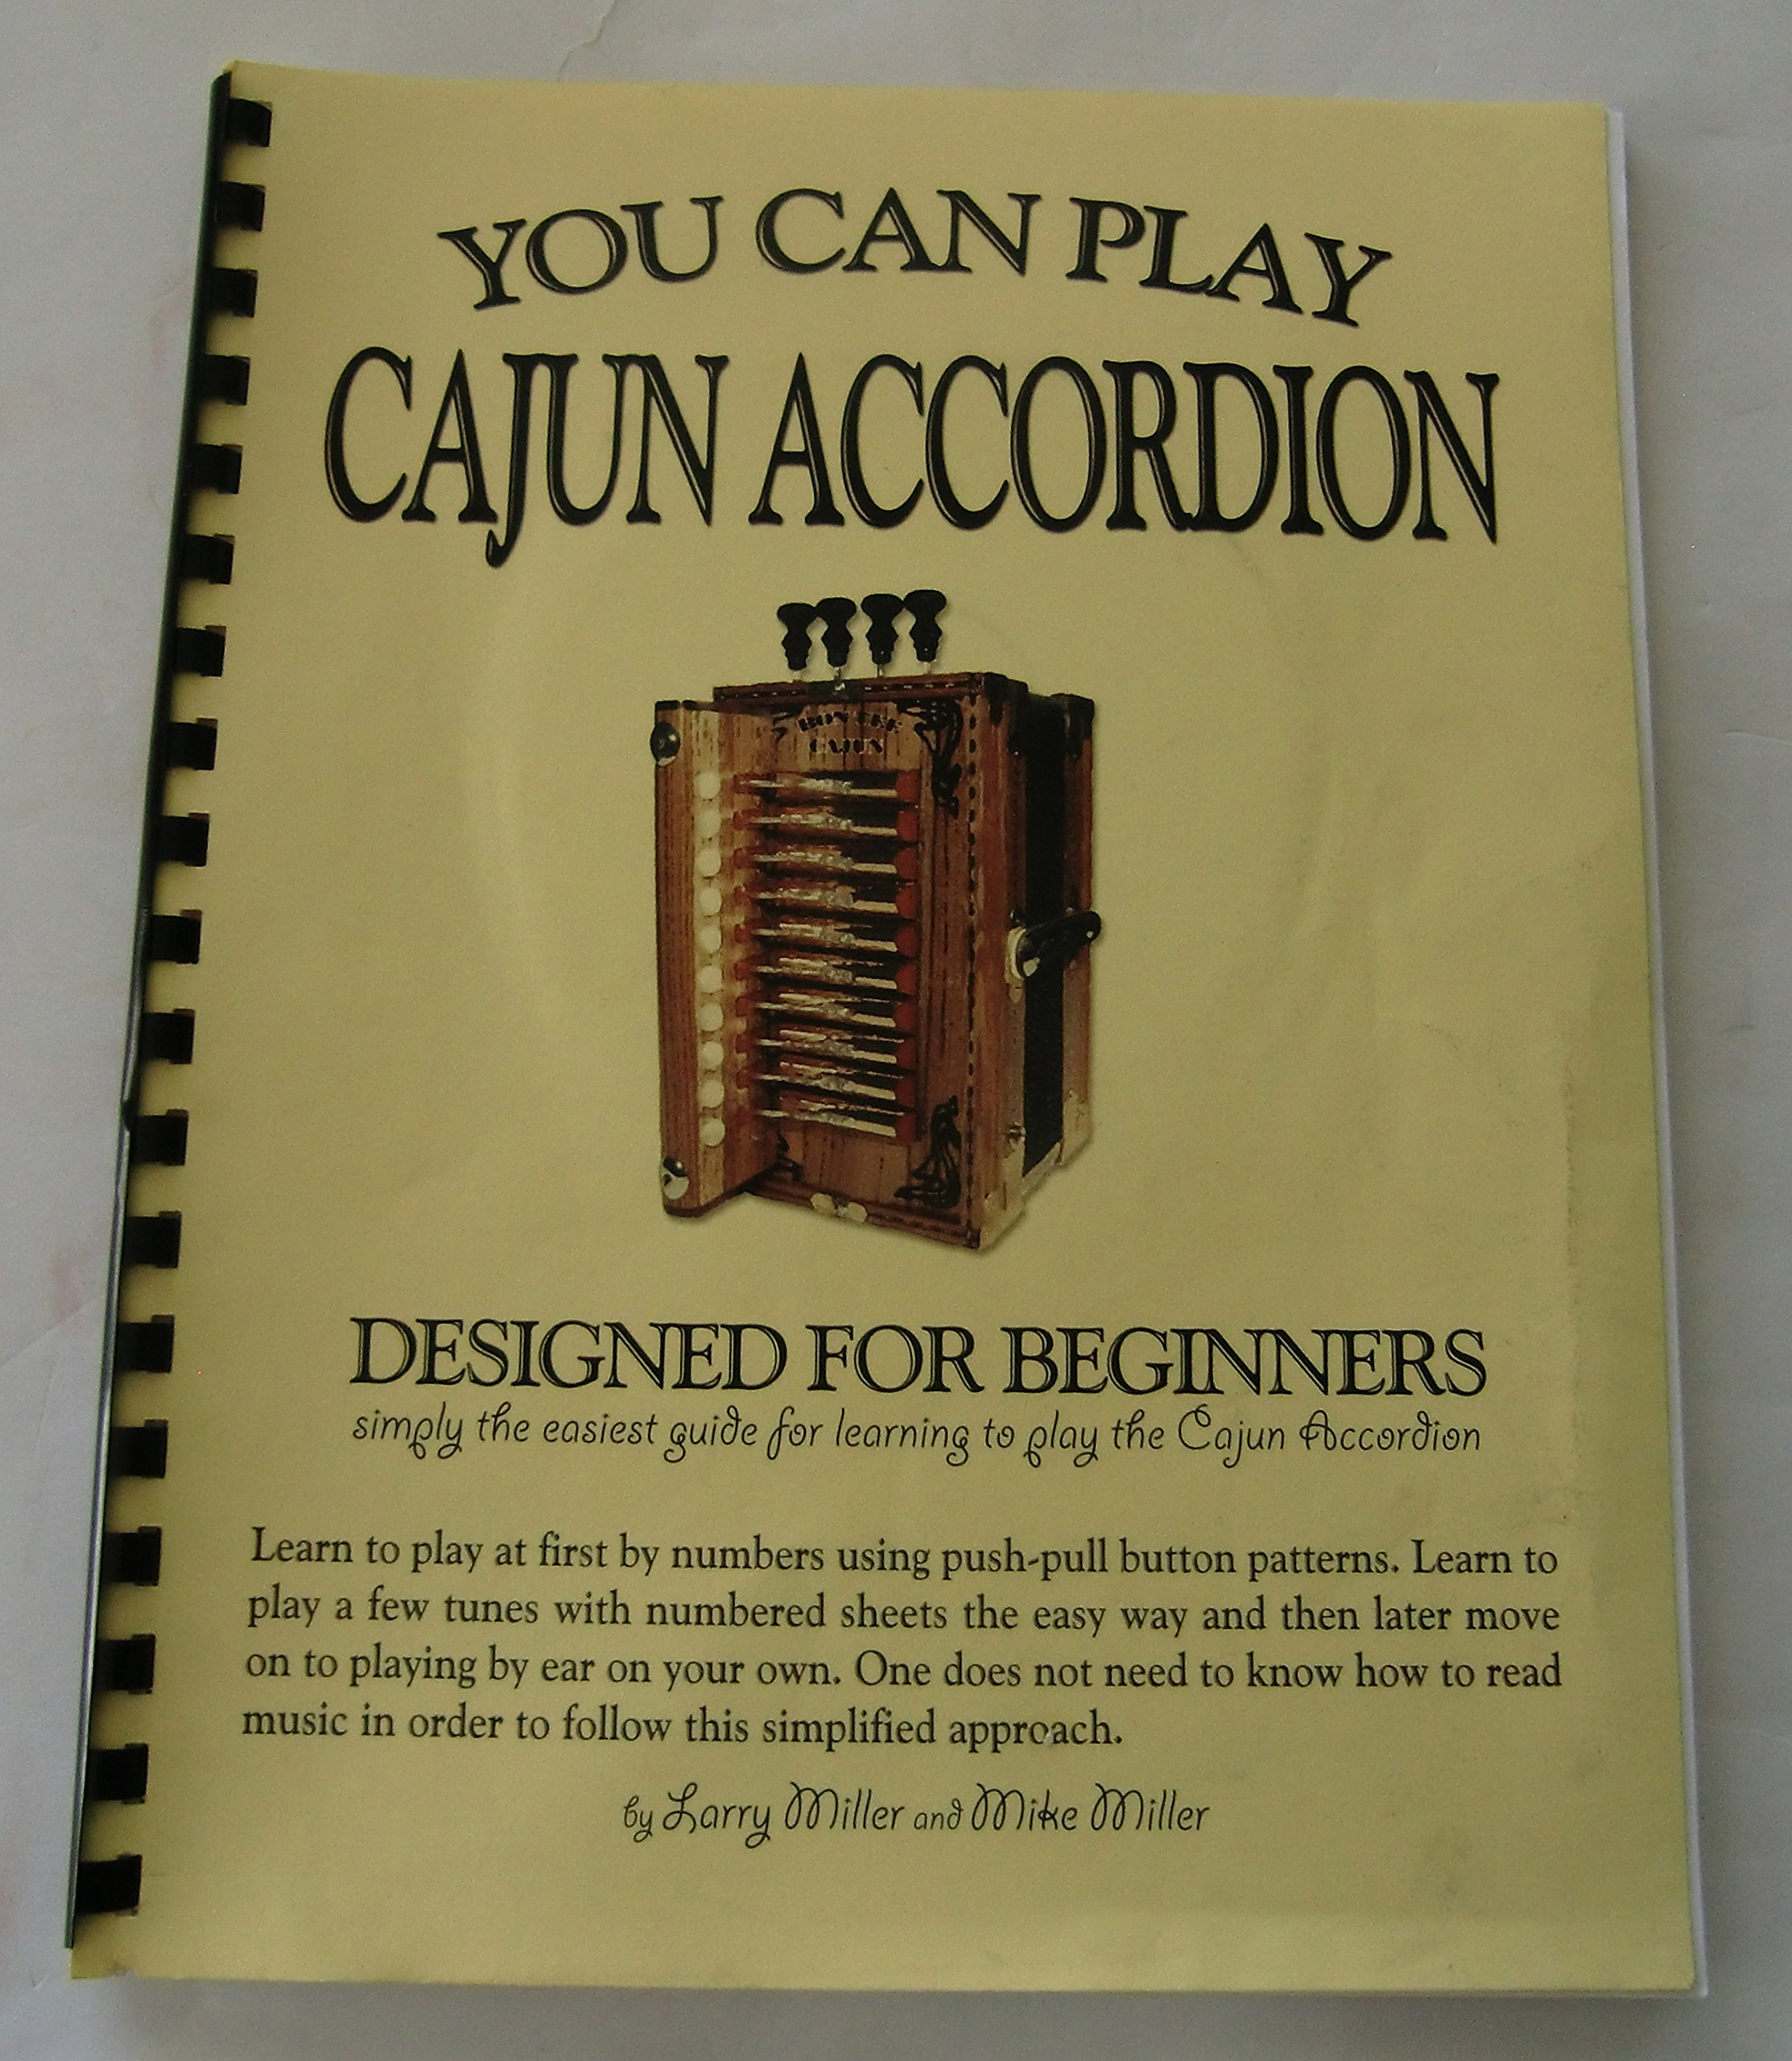 You Can Play Cajun Accordion Designed for Beginners: Larry